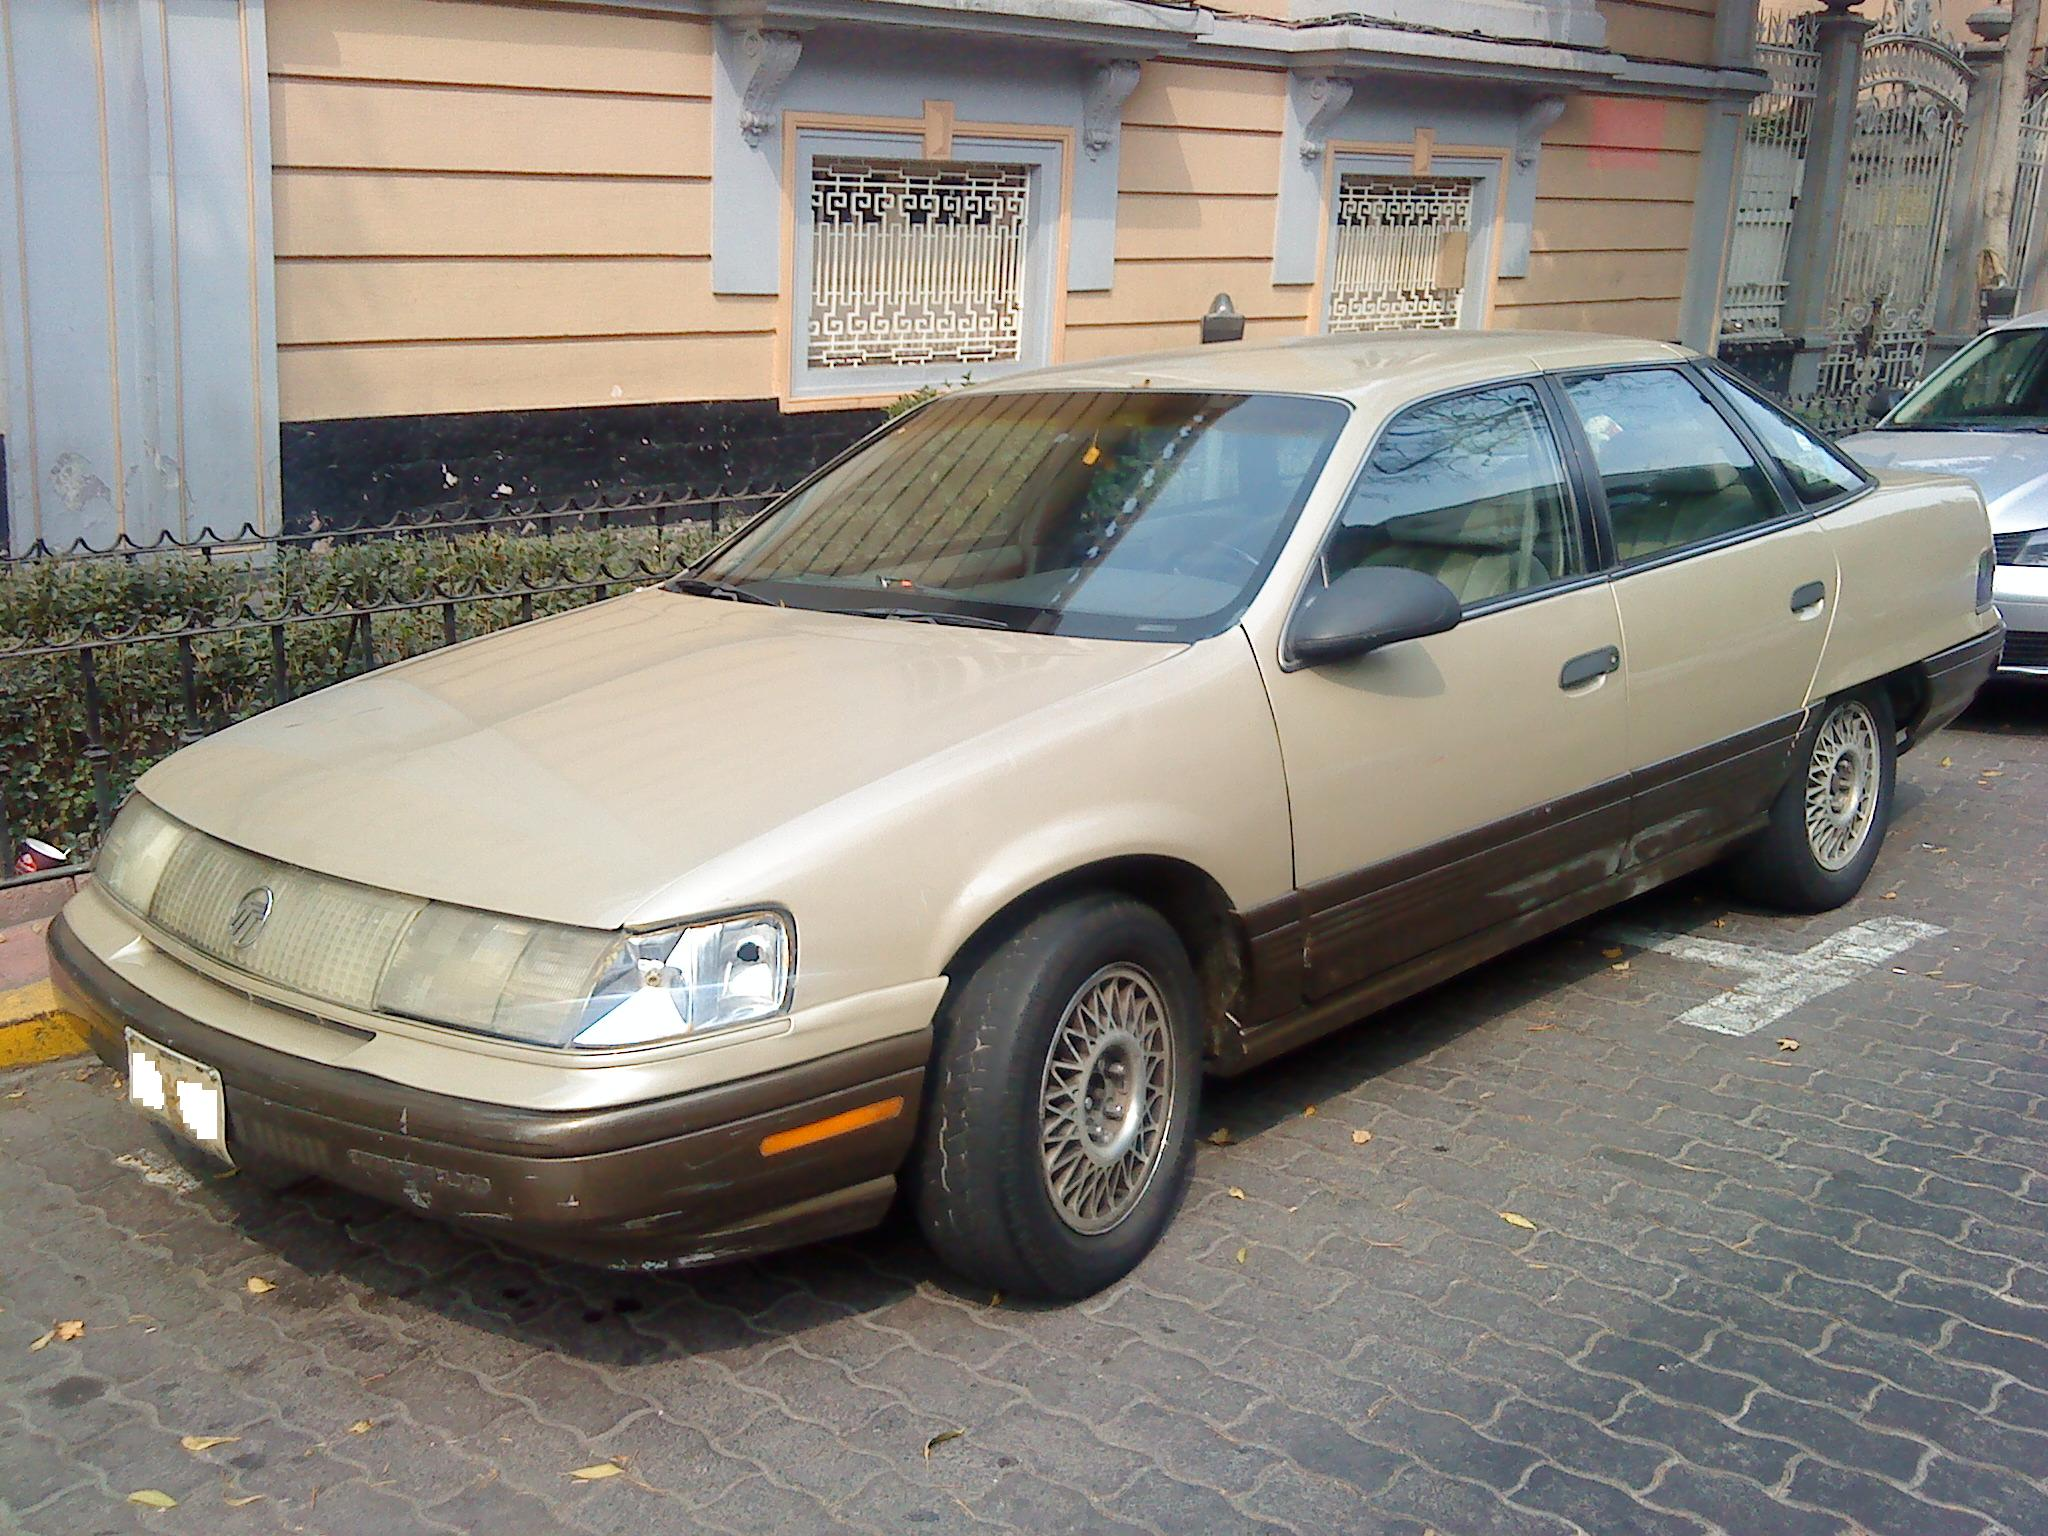 1990 Ford Taurus >> File Ford Taurus 1990 Mex 2 Jpg Wikimedia Commons